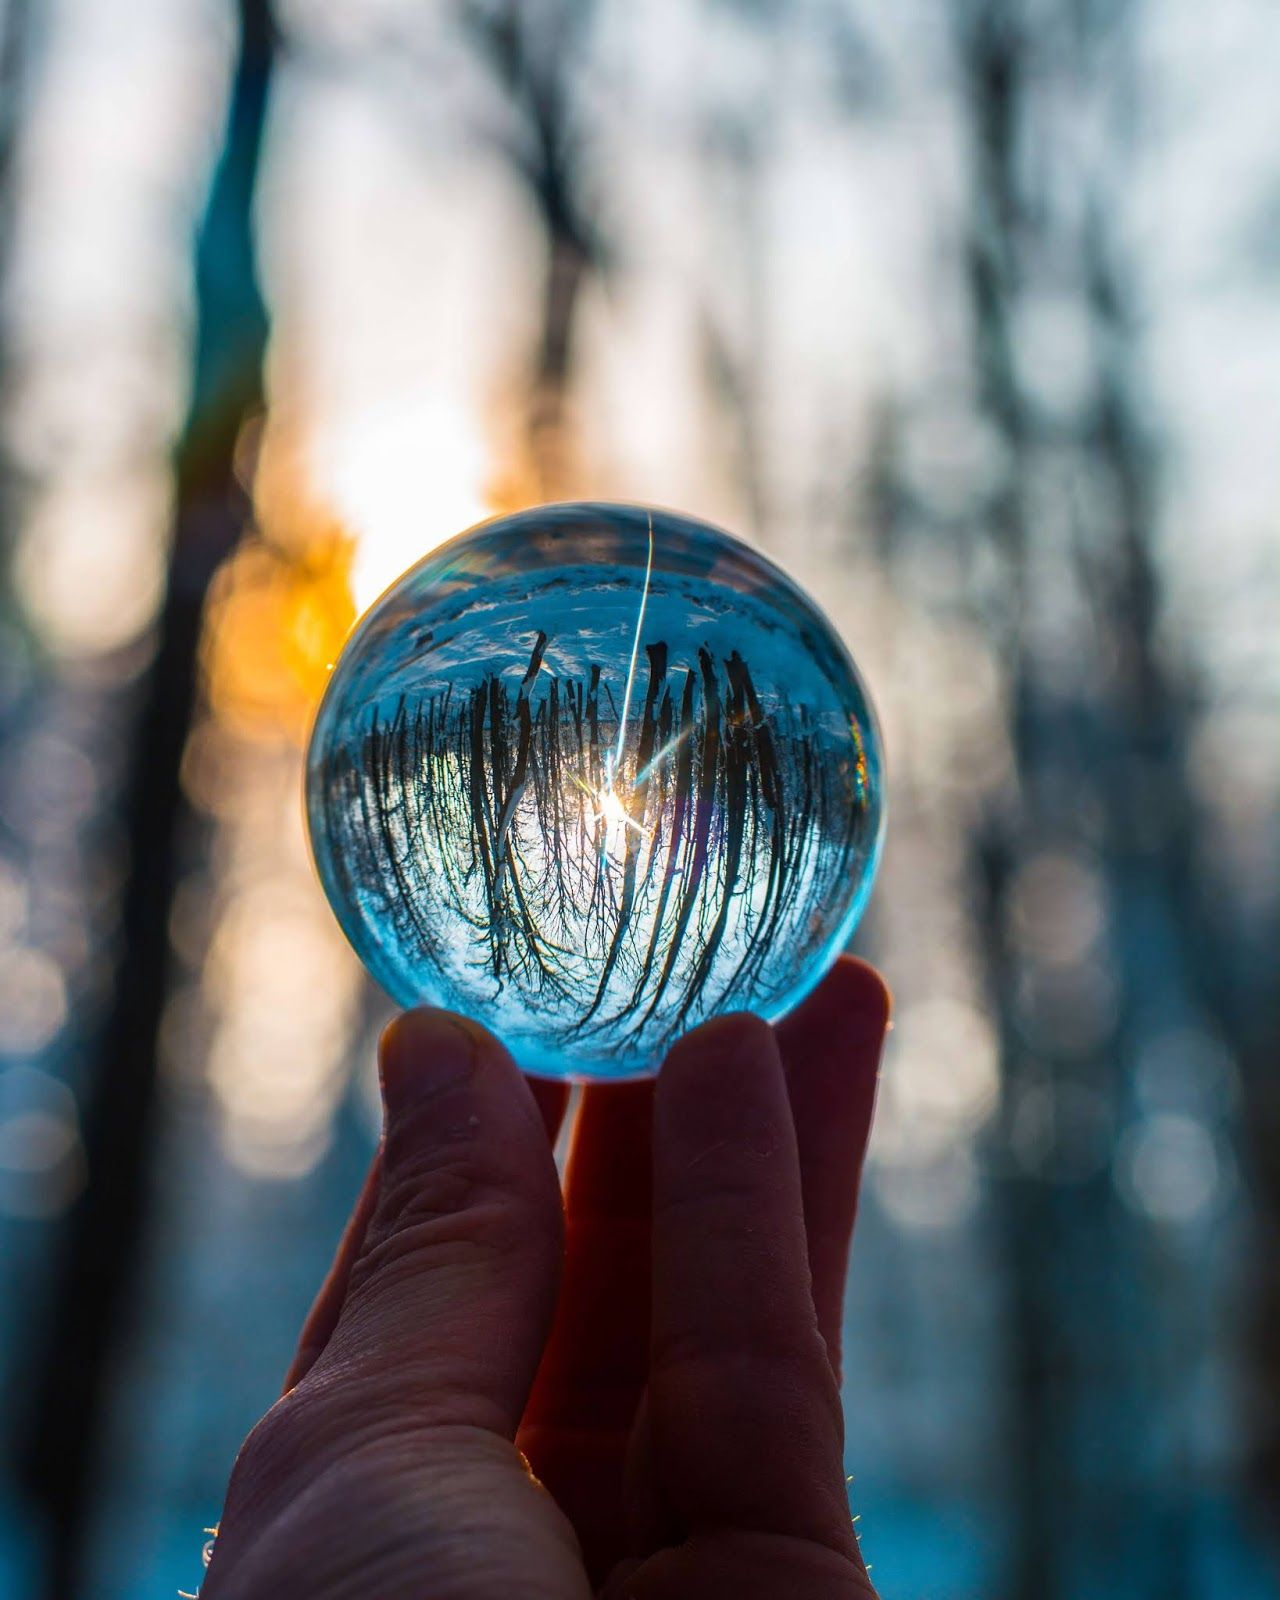 Lensball Photography Instagram in 2020 (With images) Hd